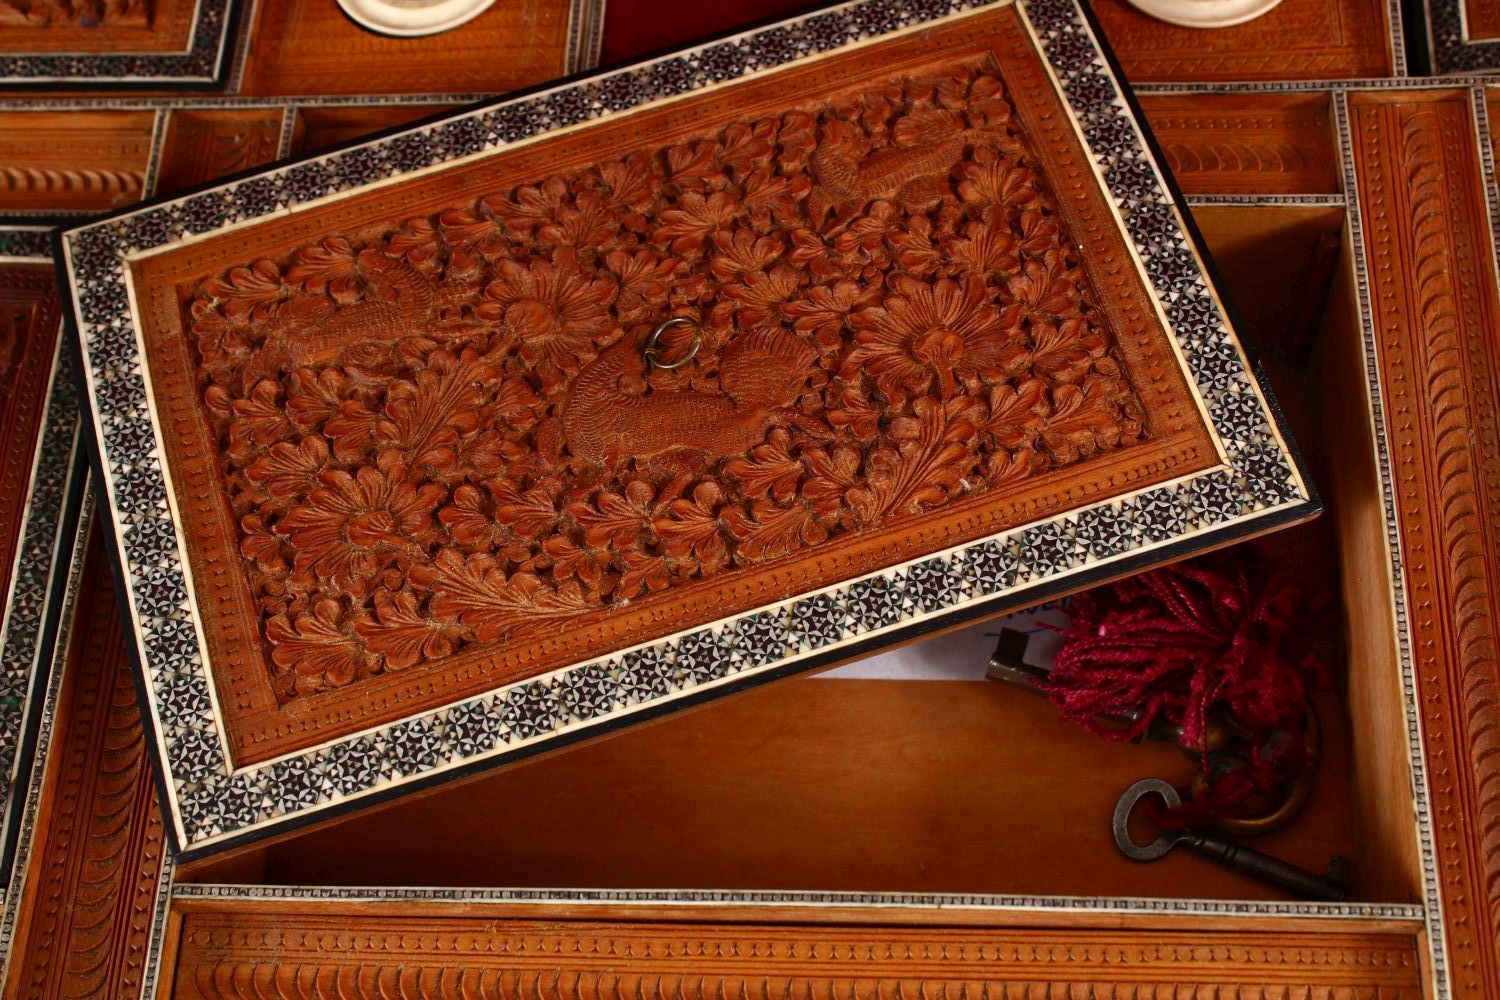 A 19TH CENTURY ANGLO INDIAN INLAID LIDDED SEWING BOX, with carved wood depicting figures and animals - Image 6 of 10